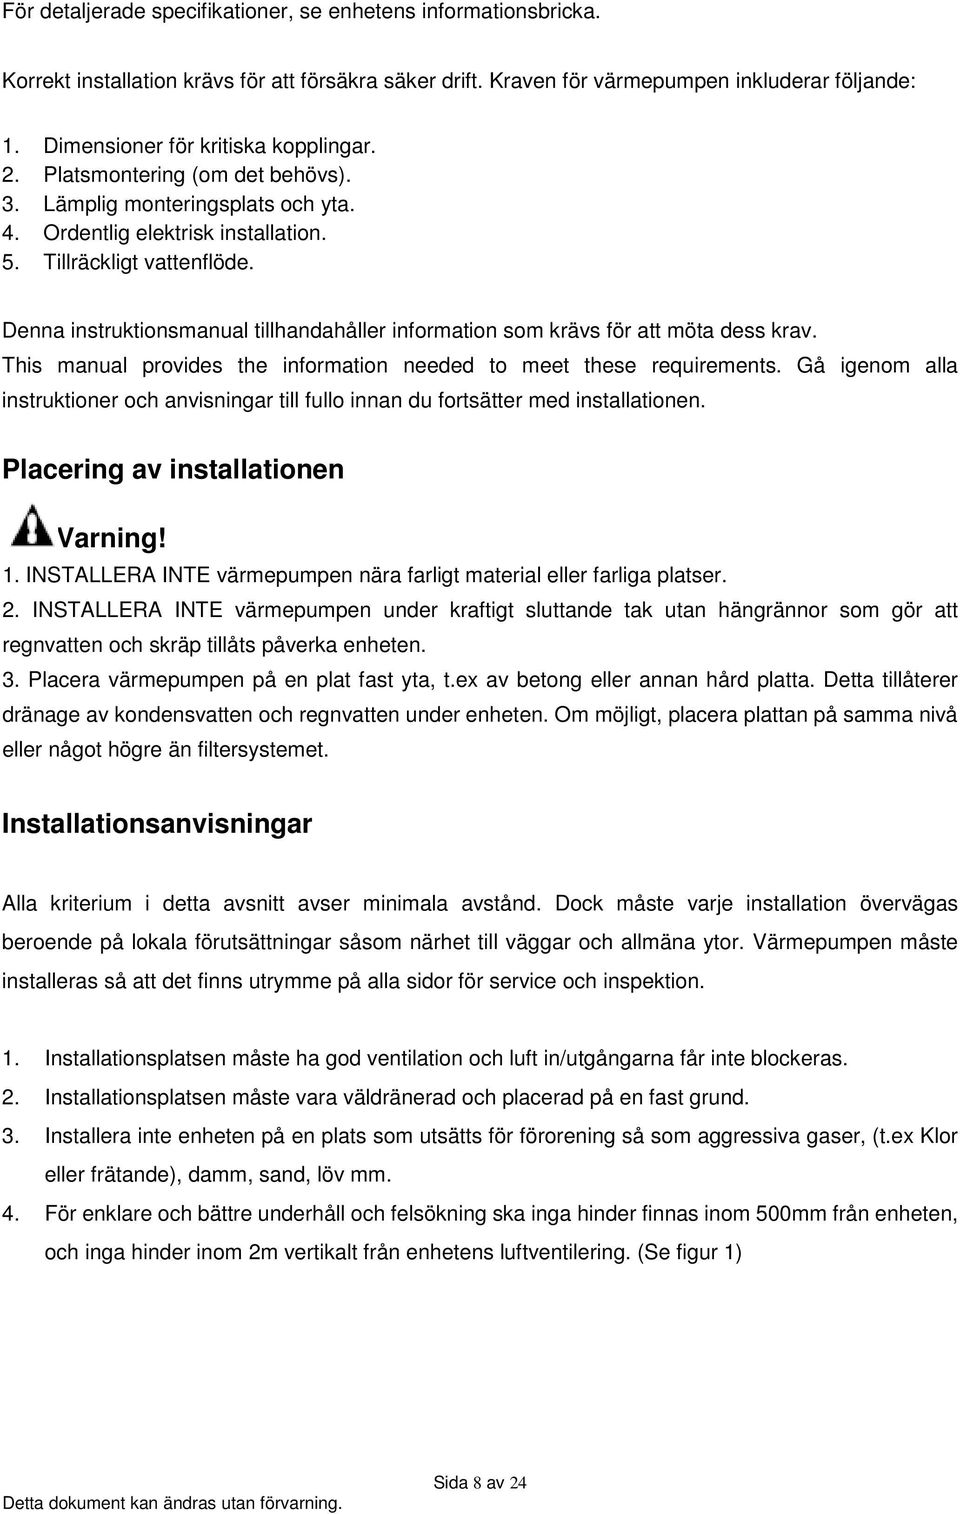 Denna instruktionsmanual tillhandahåller information som krävs för att möta dess krav. This manual provides the information needed to meet these requirements.